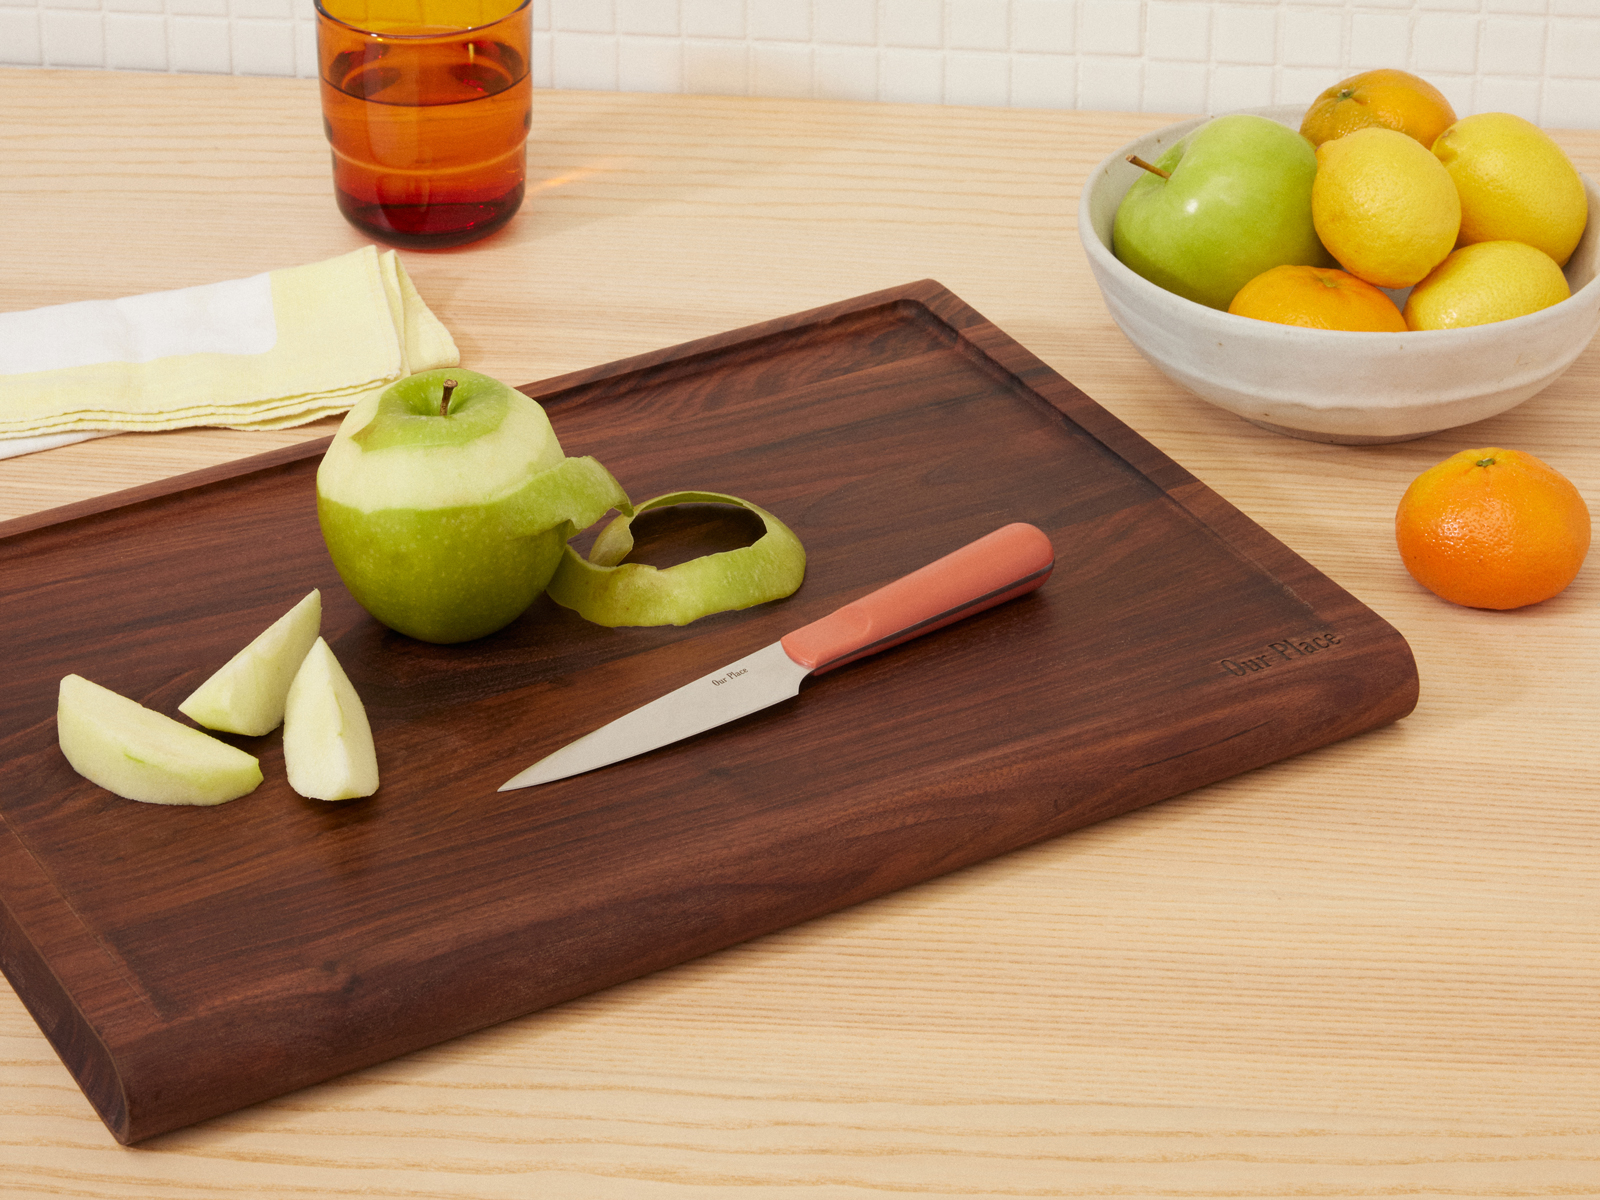 Our Place walnut cutting board and paring knife